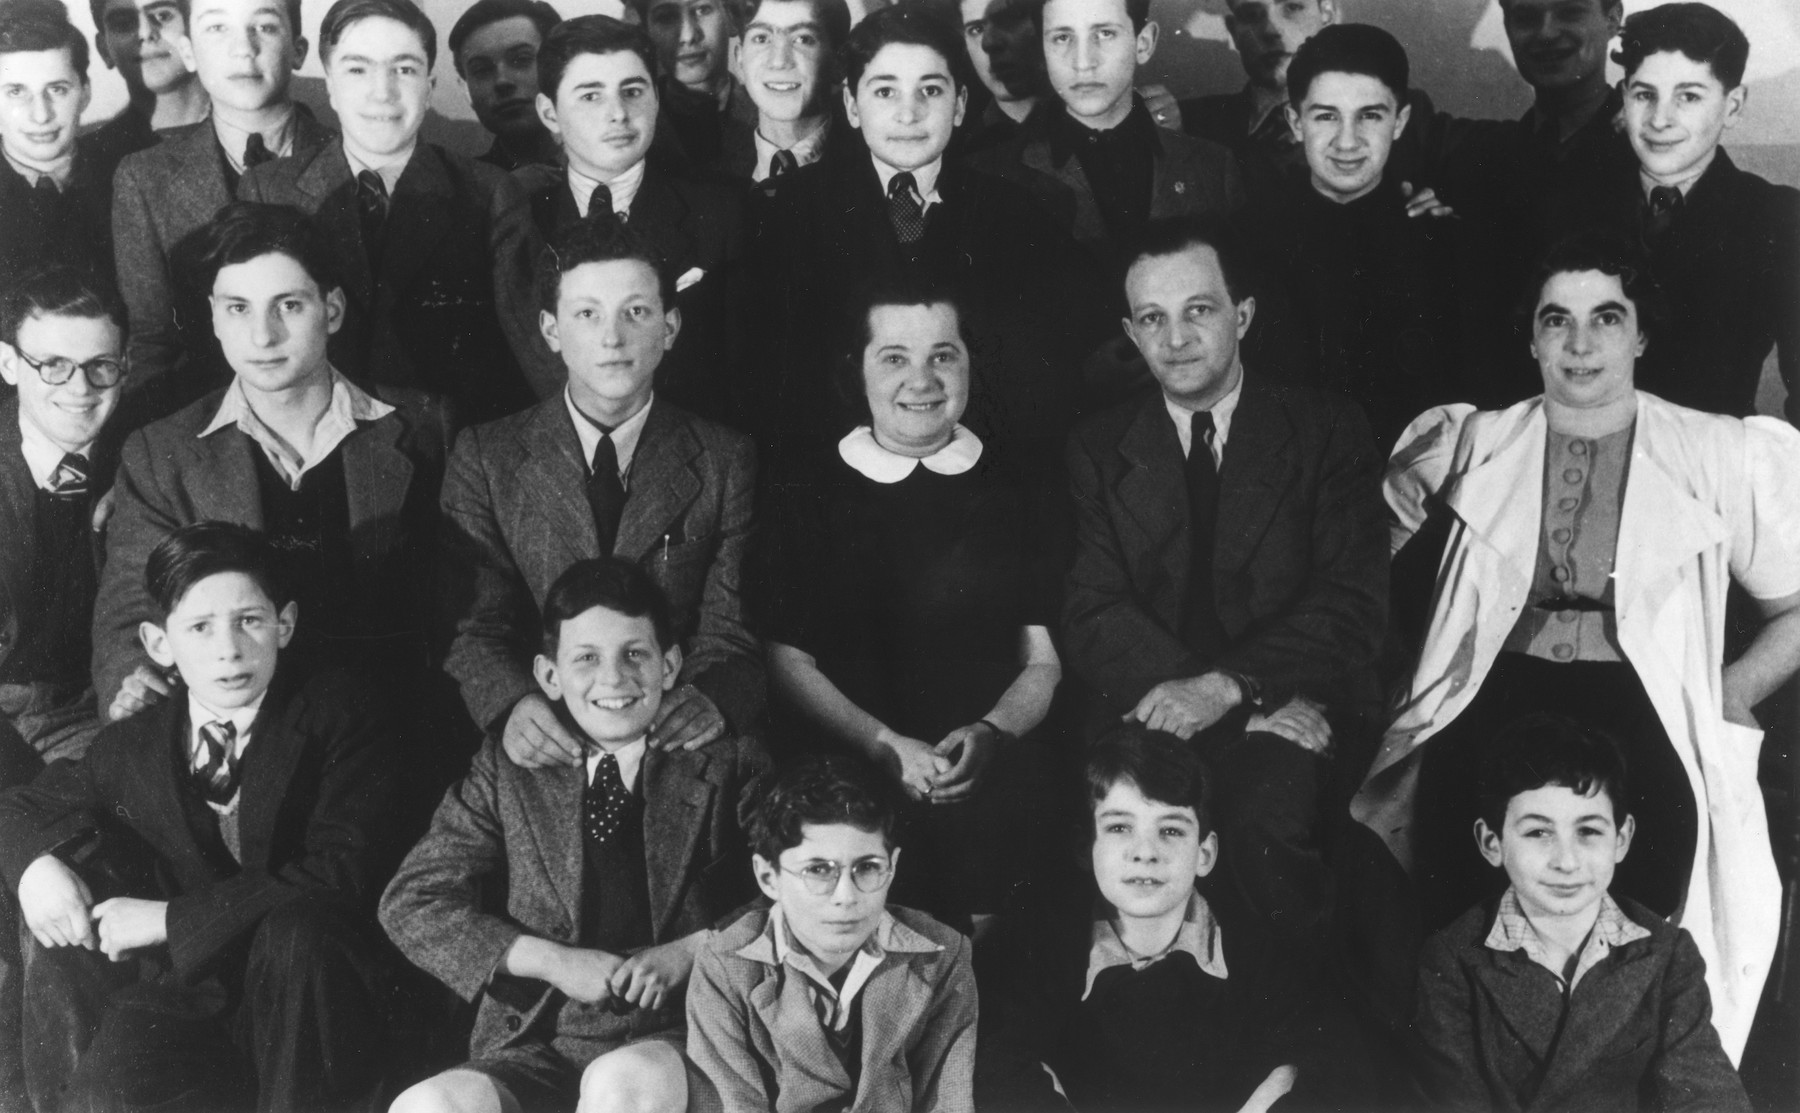 Group portrait of German Jewish refugee children and their caretakers who came to England from the Netherlands.  Among those pictured are Mr. Siegfried Alexander and his wife Erna and the housemother, Martha Strauss (in the white coat).